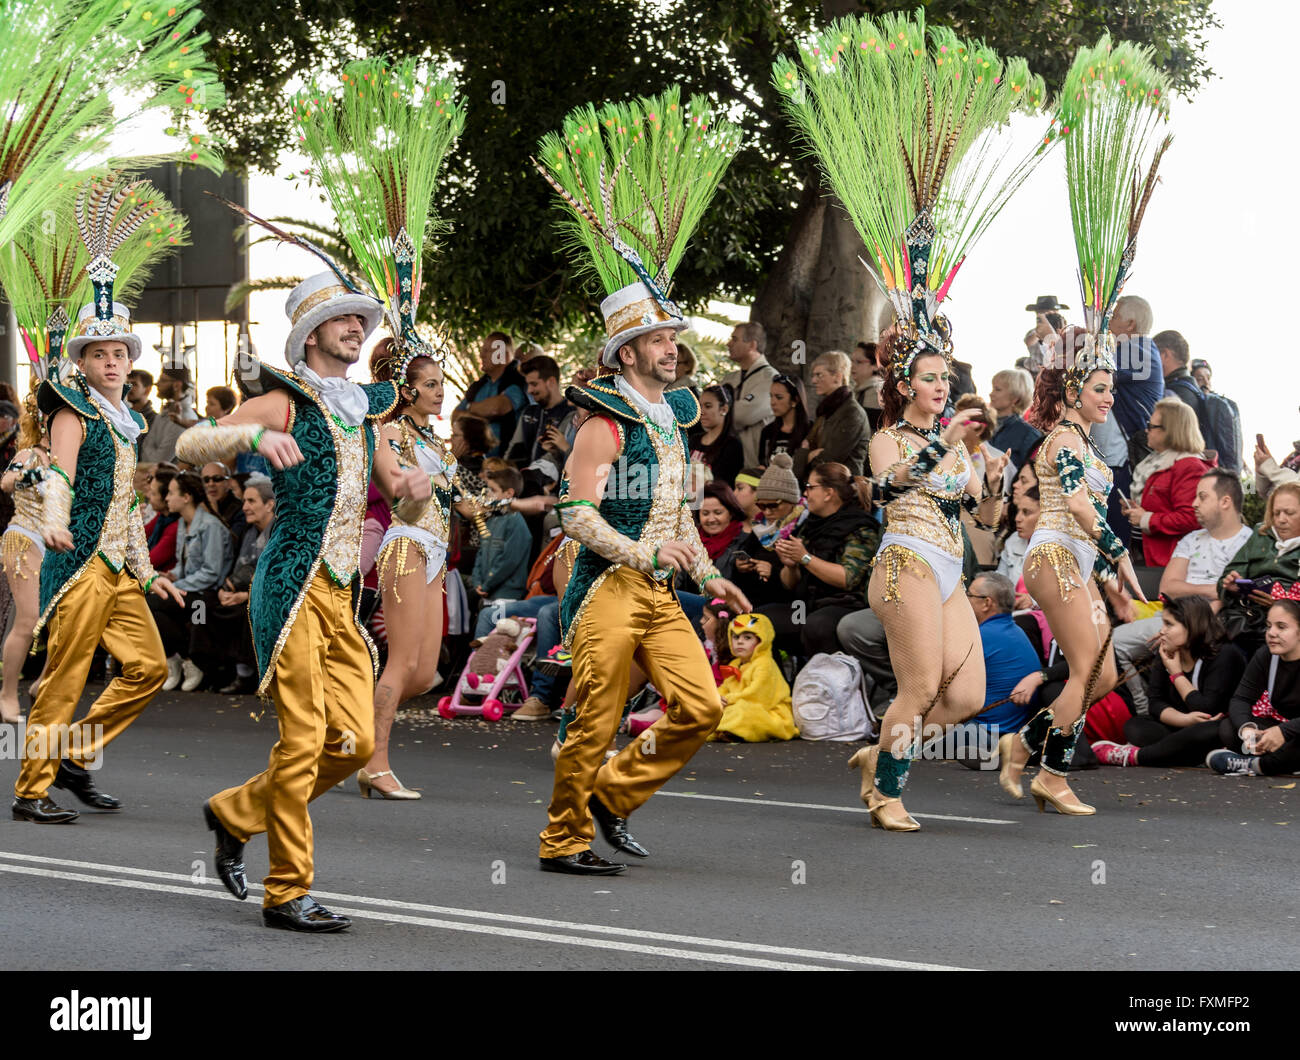 Dancers in elaborate costumes, Carnival Procession, Santa Cruz, Tenerife - Stock Image